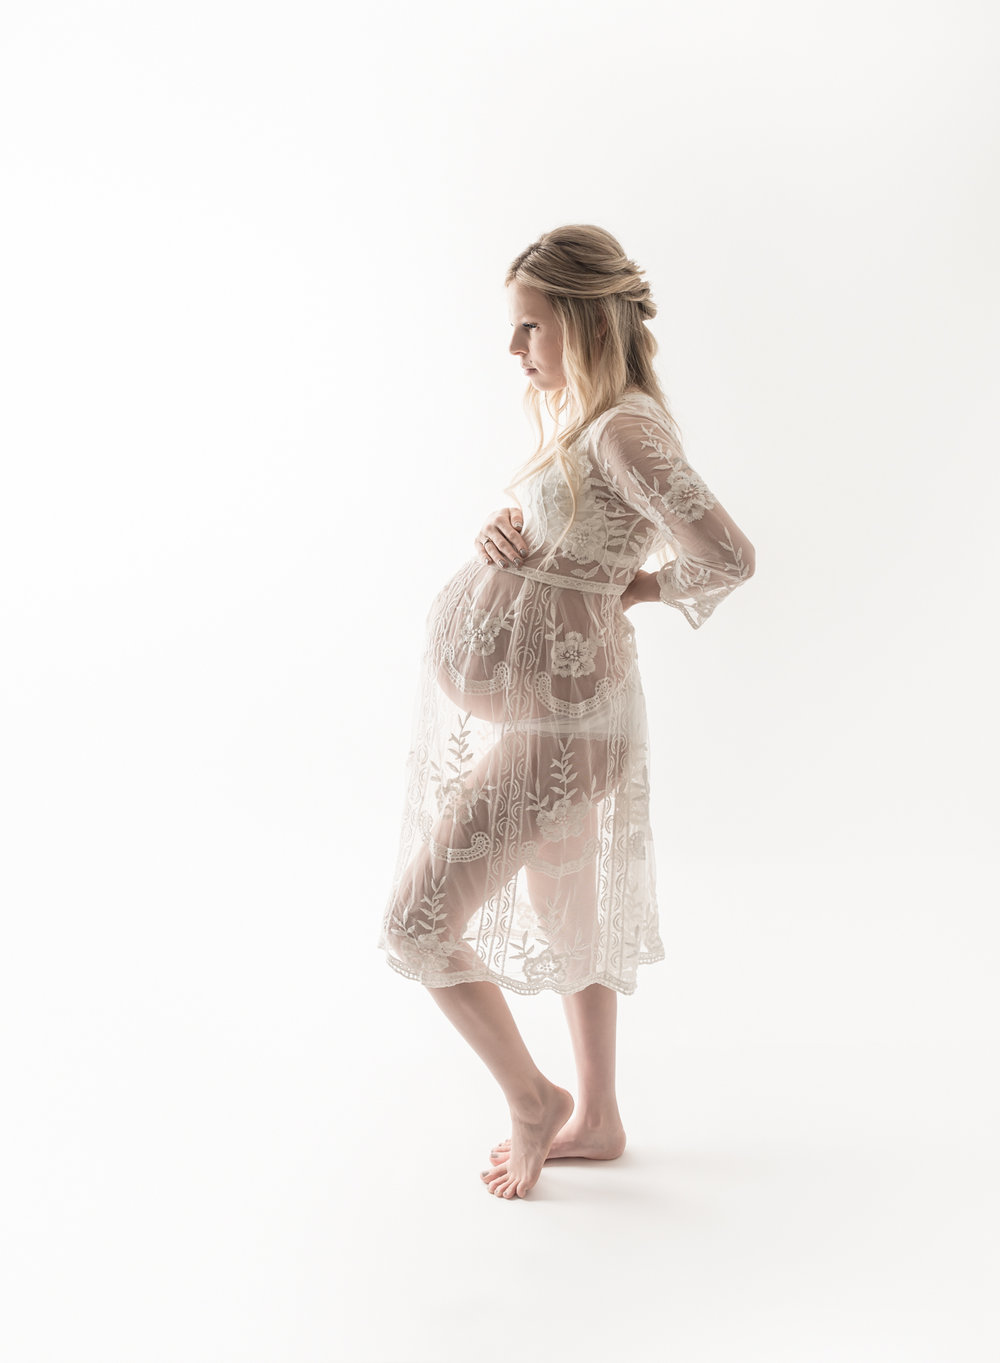 Queen Creek Maternity Photographer | Stacie Bozer